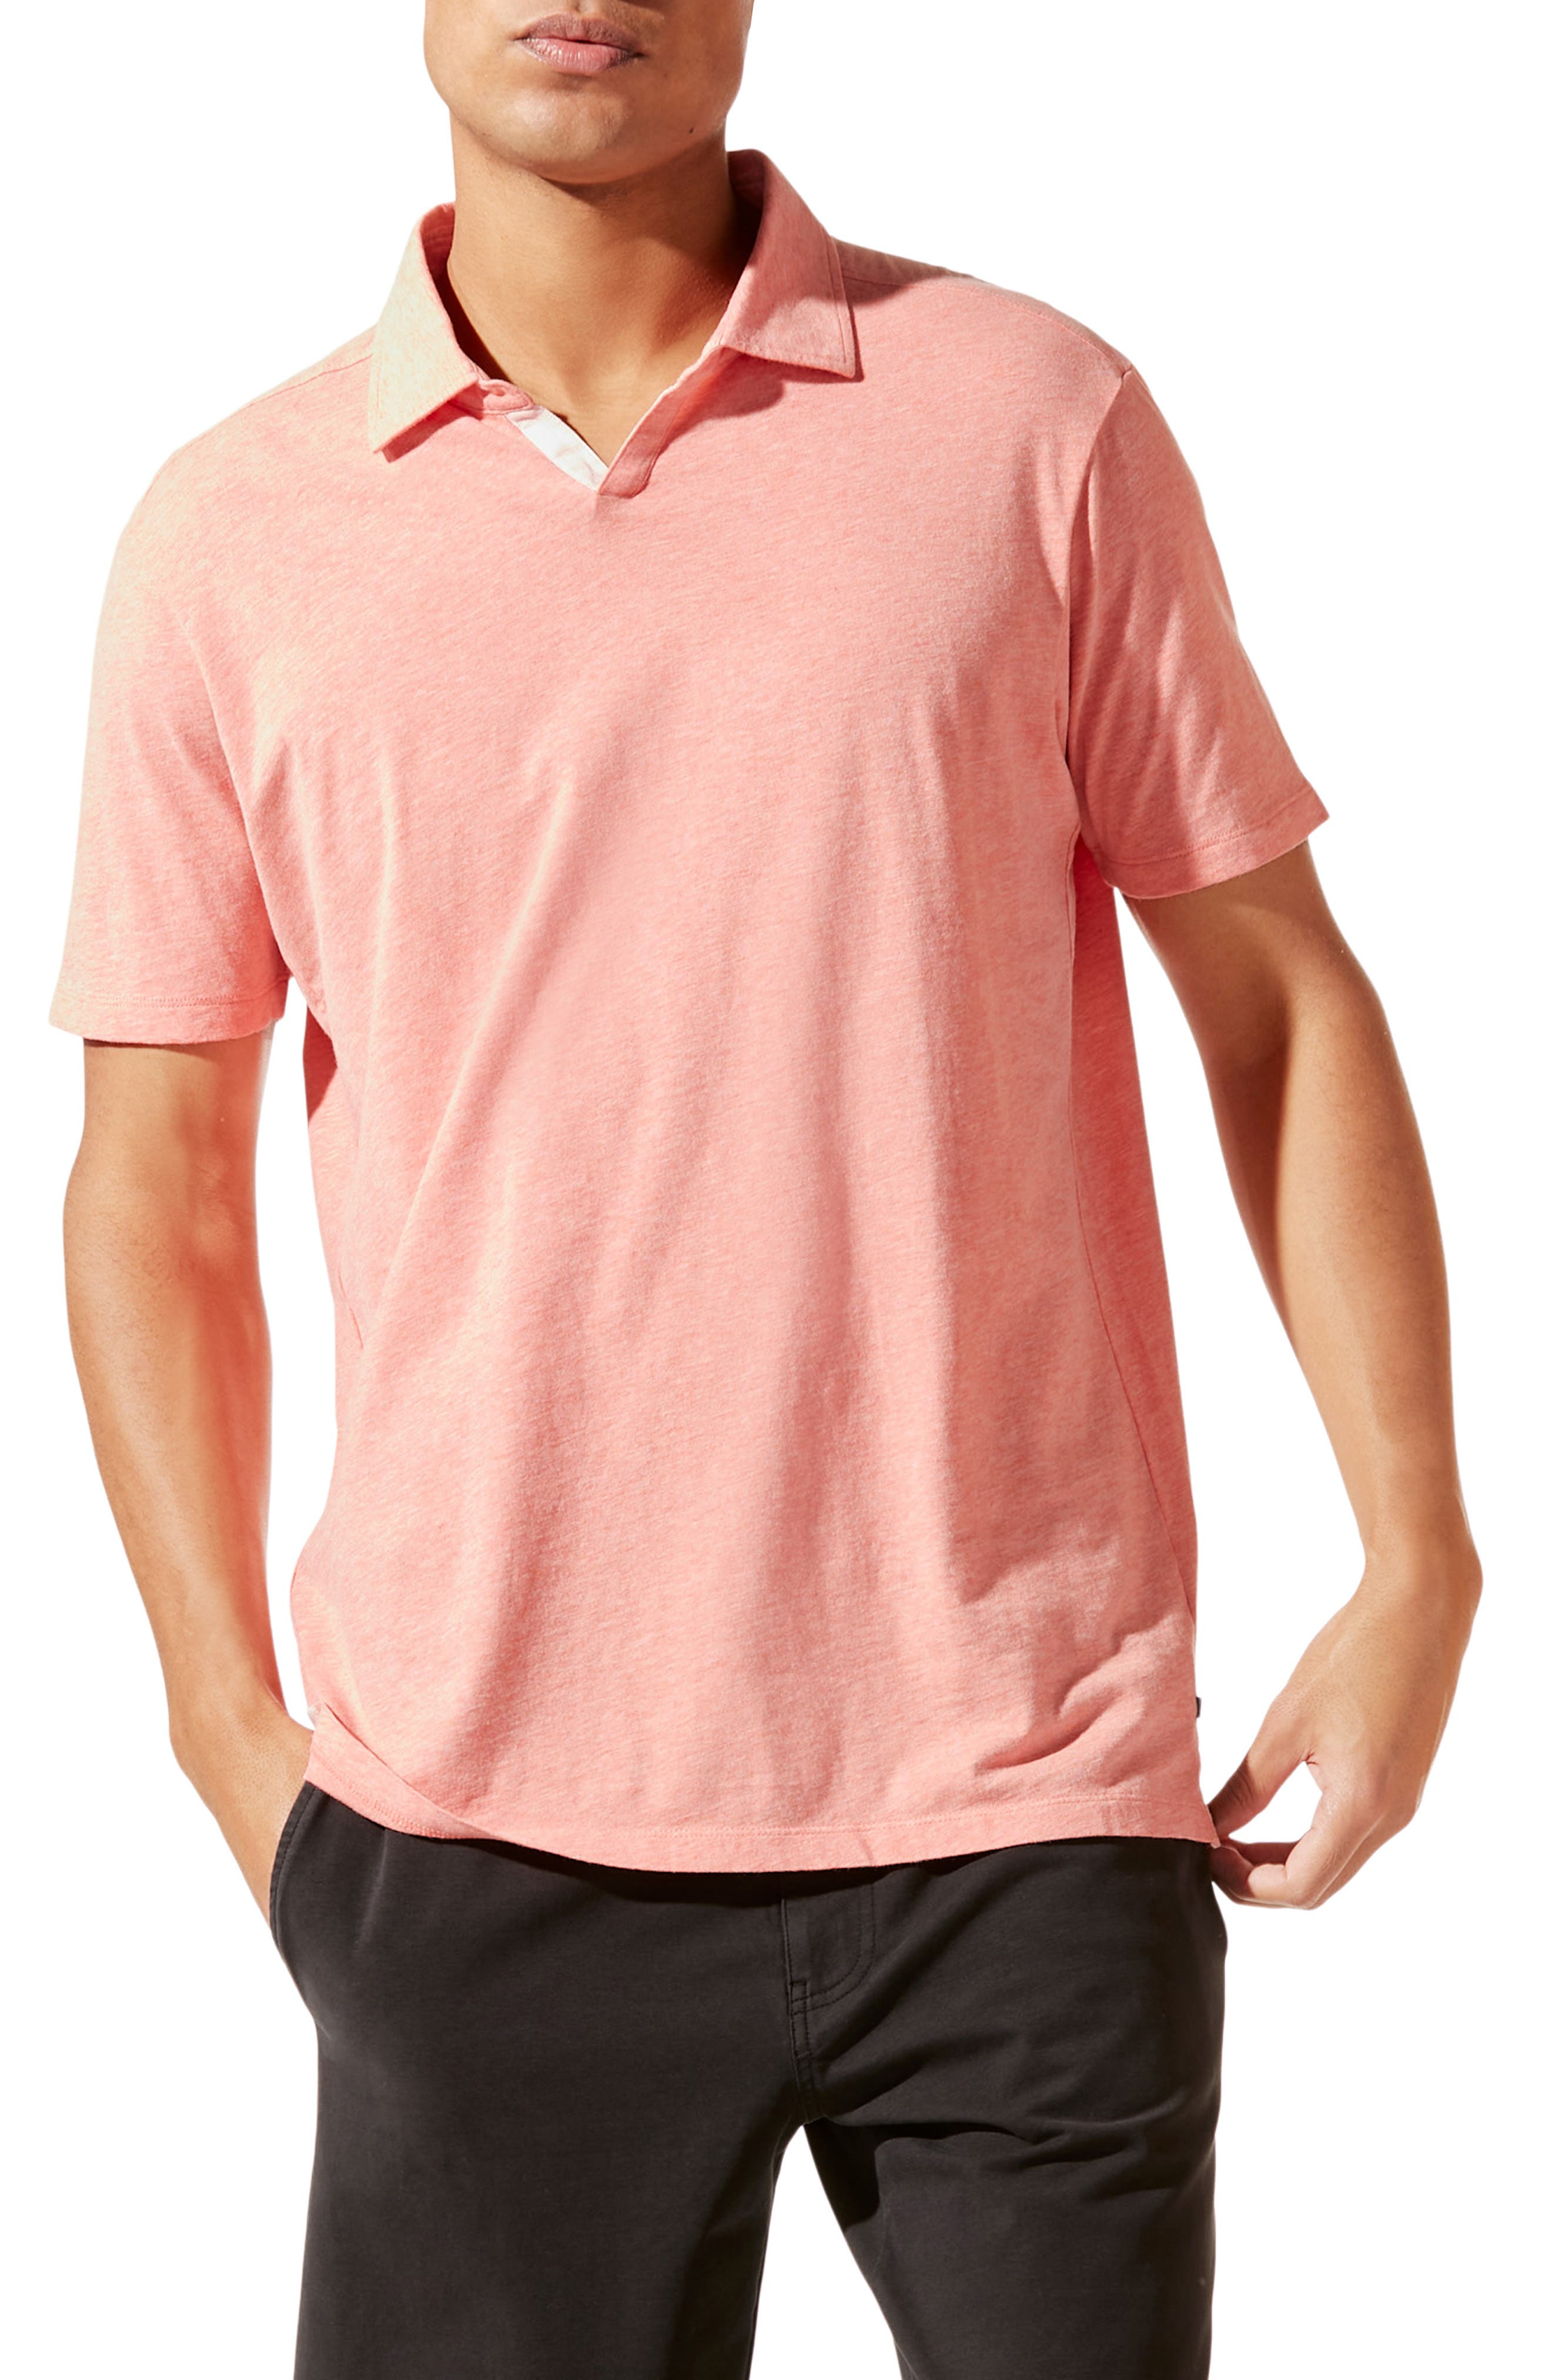 Athletic Slim Fit Short Sleeve Polo